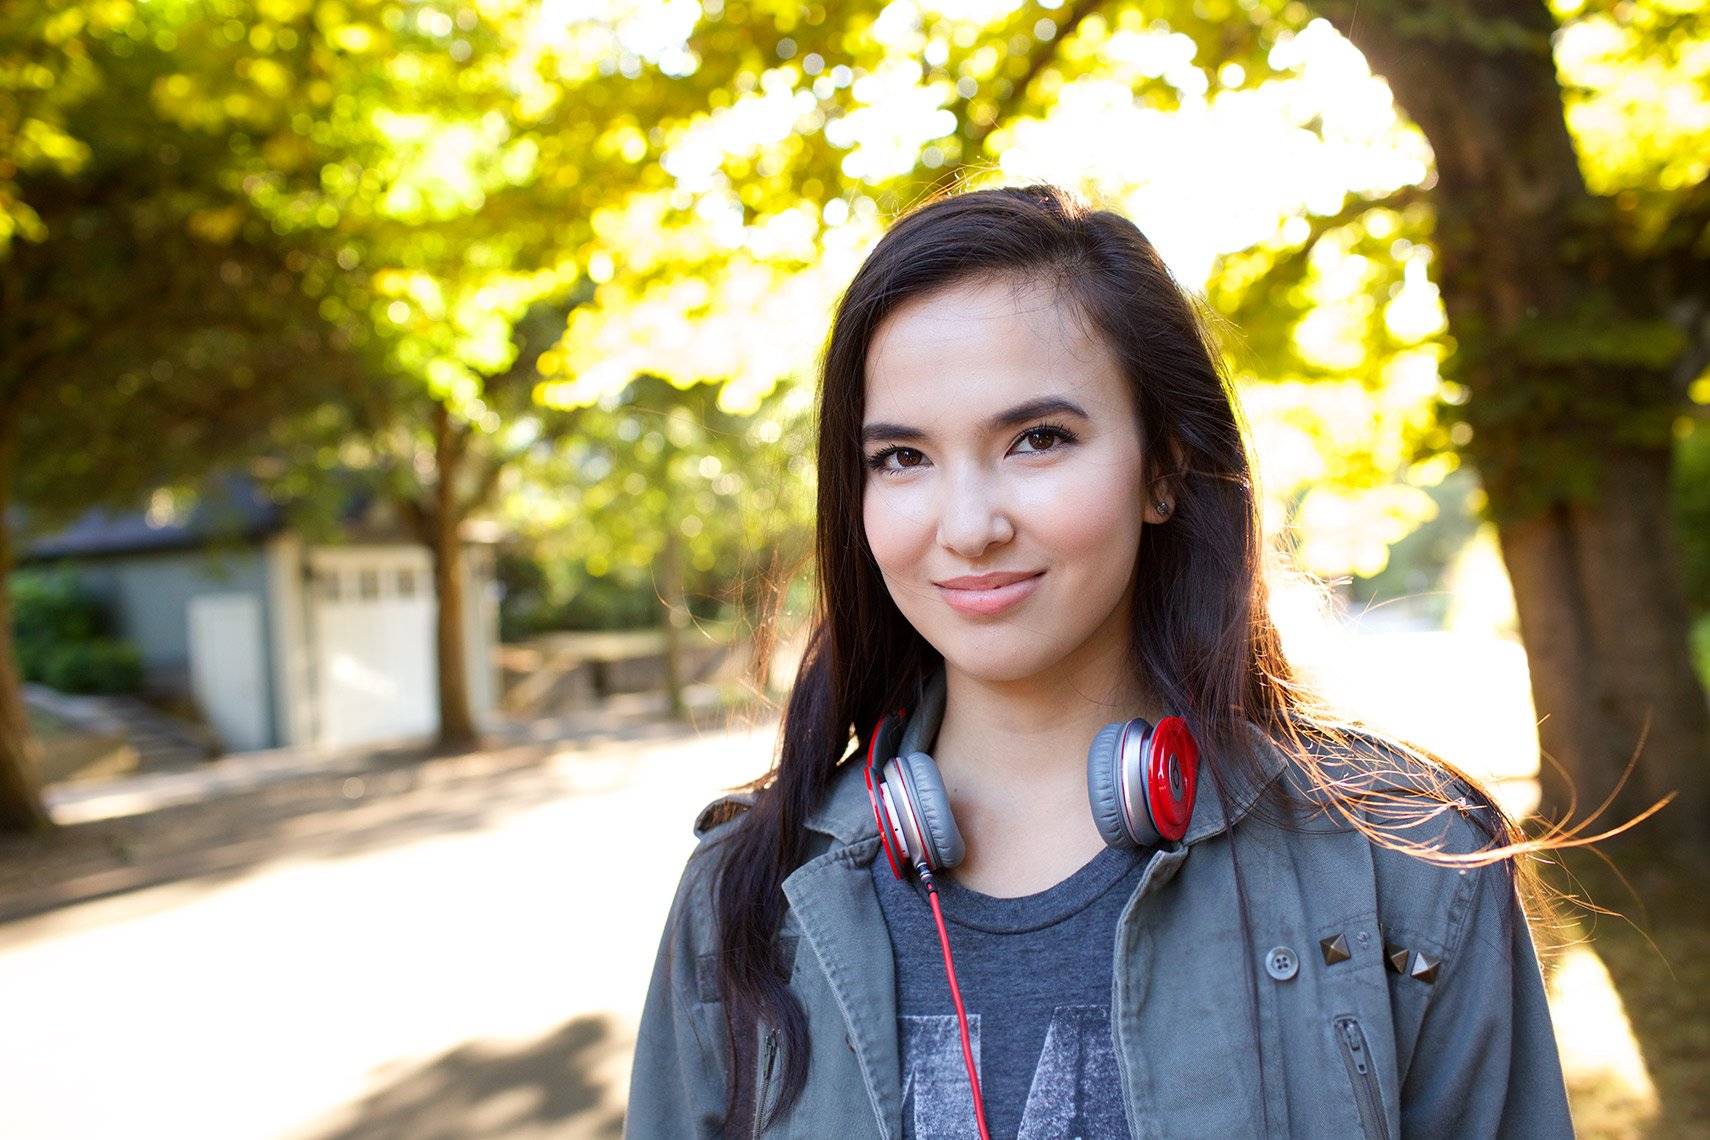 Asian-American teenager-with-headphones_Robert-Holland